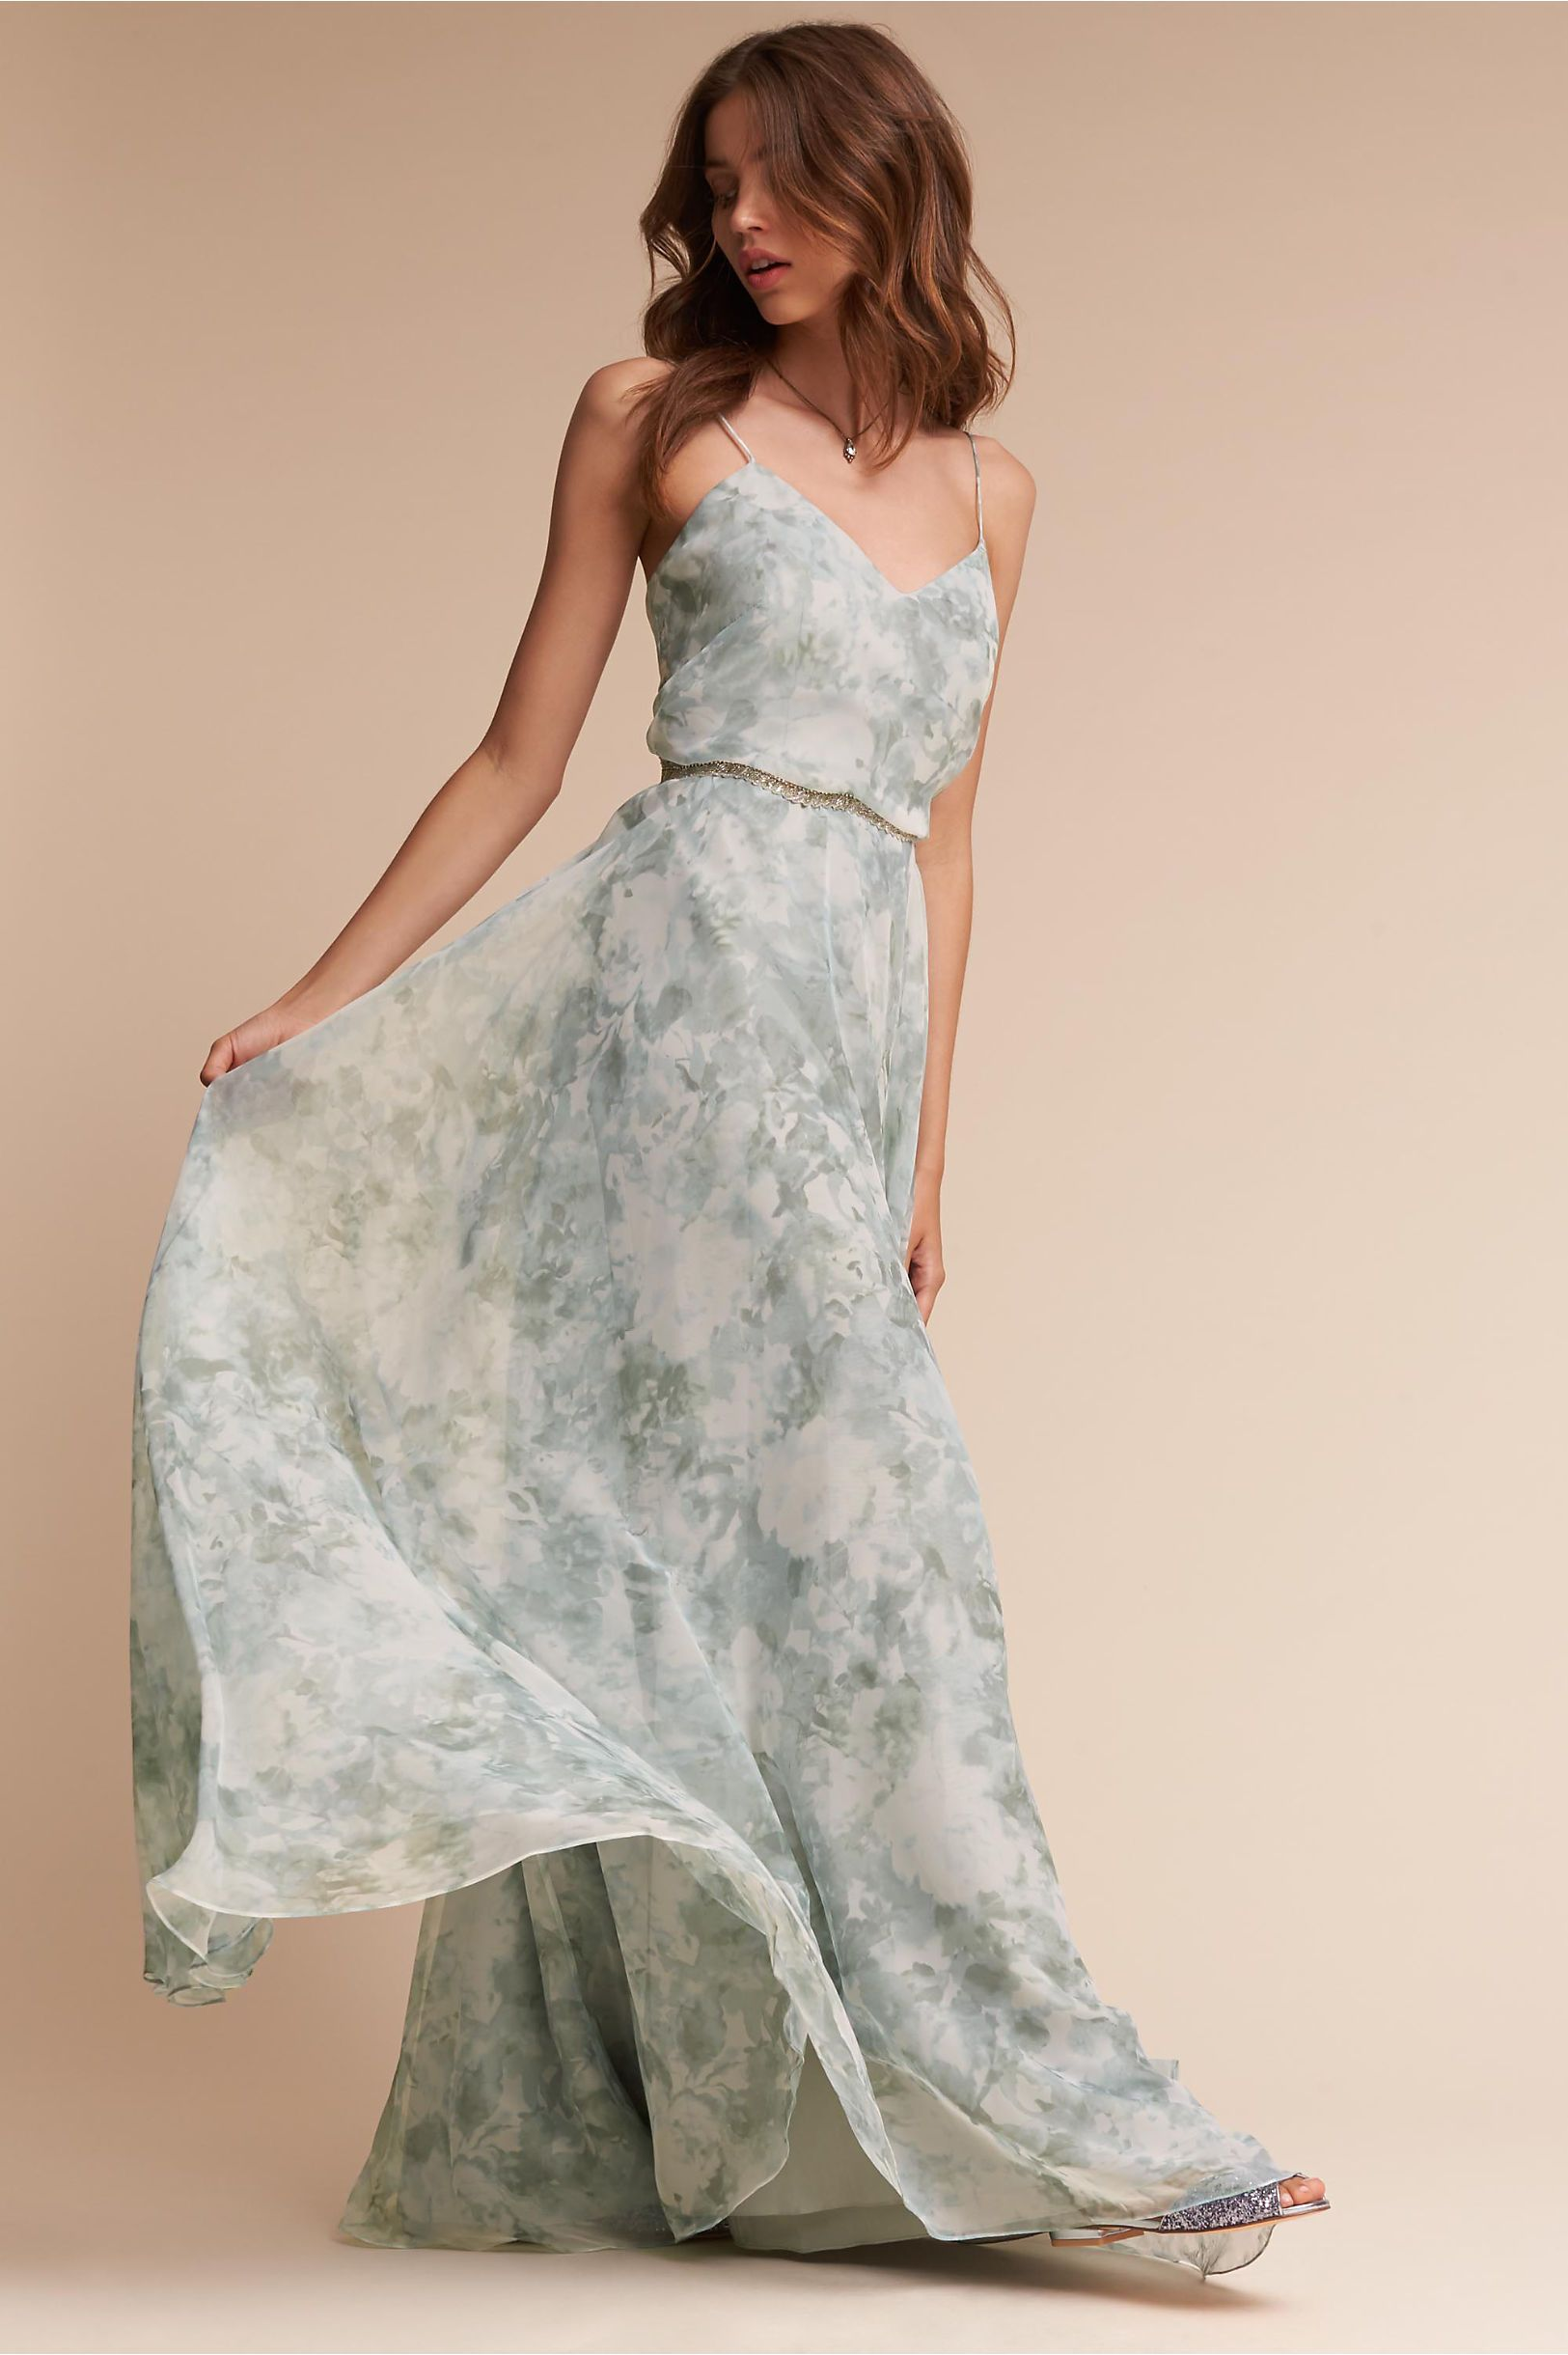 4179e19c3 BHLDN's Jenny Yoo Inesse Dress in Mist Multi | Products | Bhldn ...